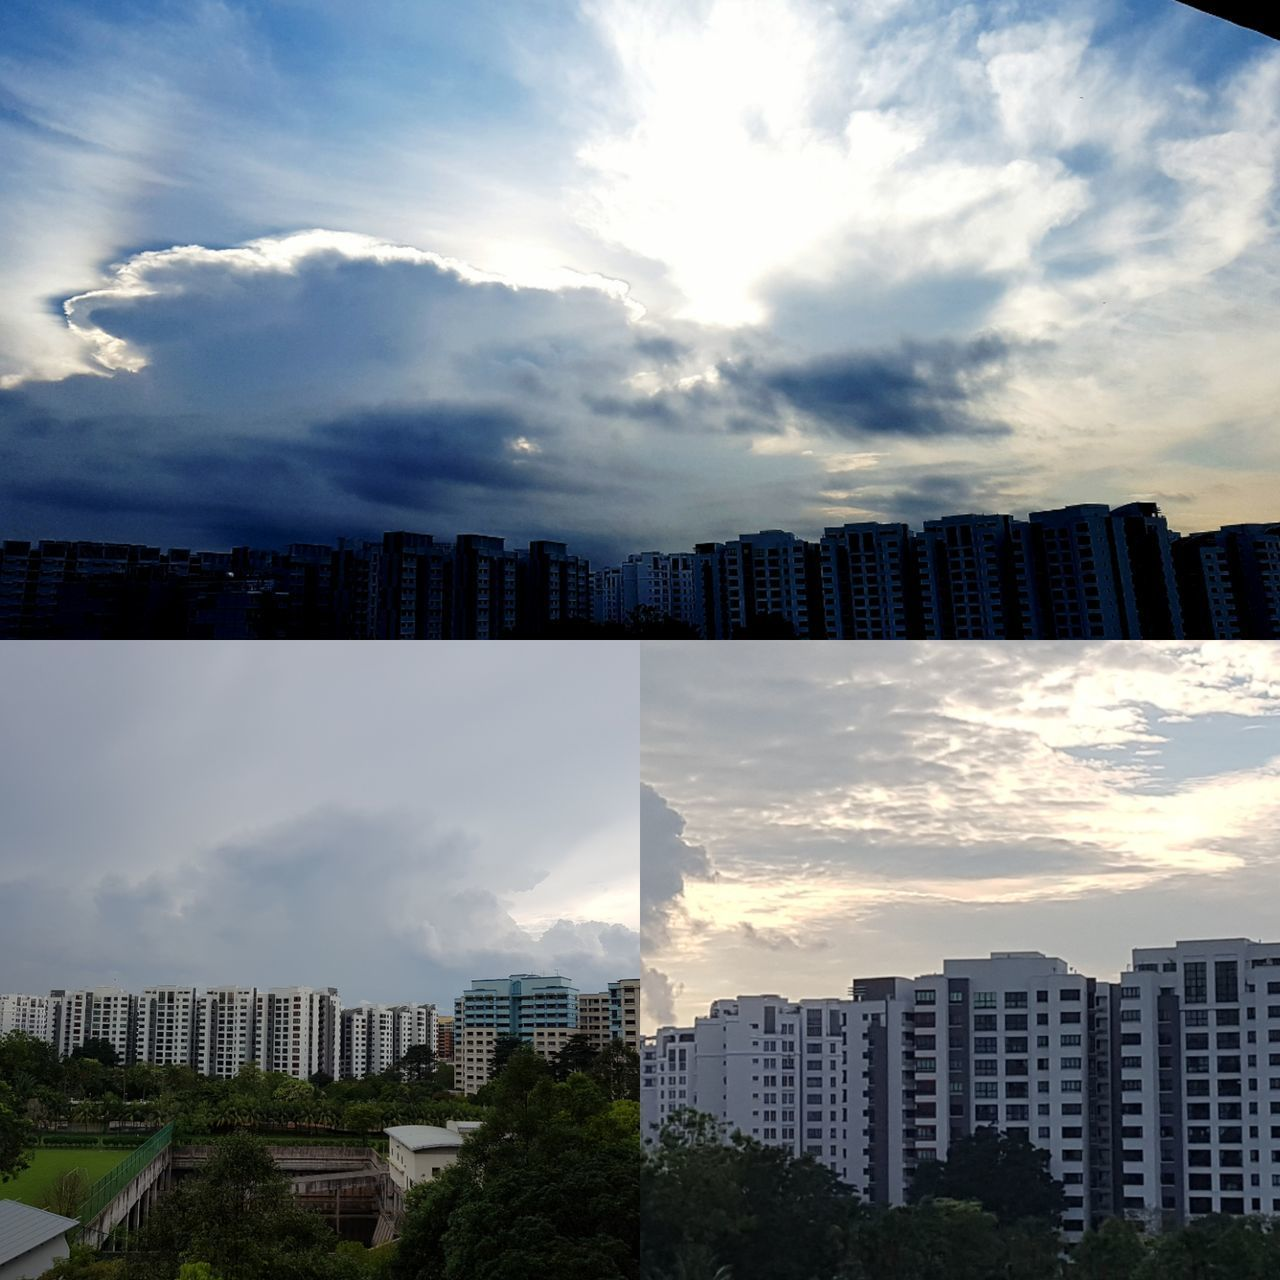 cloud - sky, building exterior, architecture, sky, built structure, cityscape, city, skyscraper, modern, no people, outdoors, day, growth, nature, tree, beauty in nature